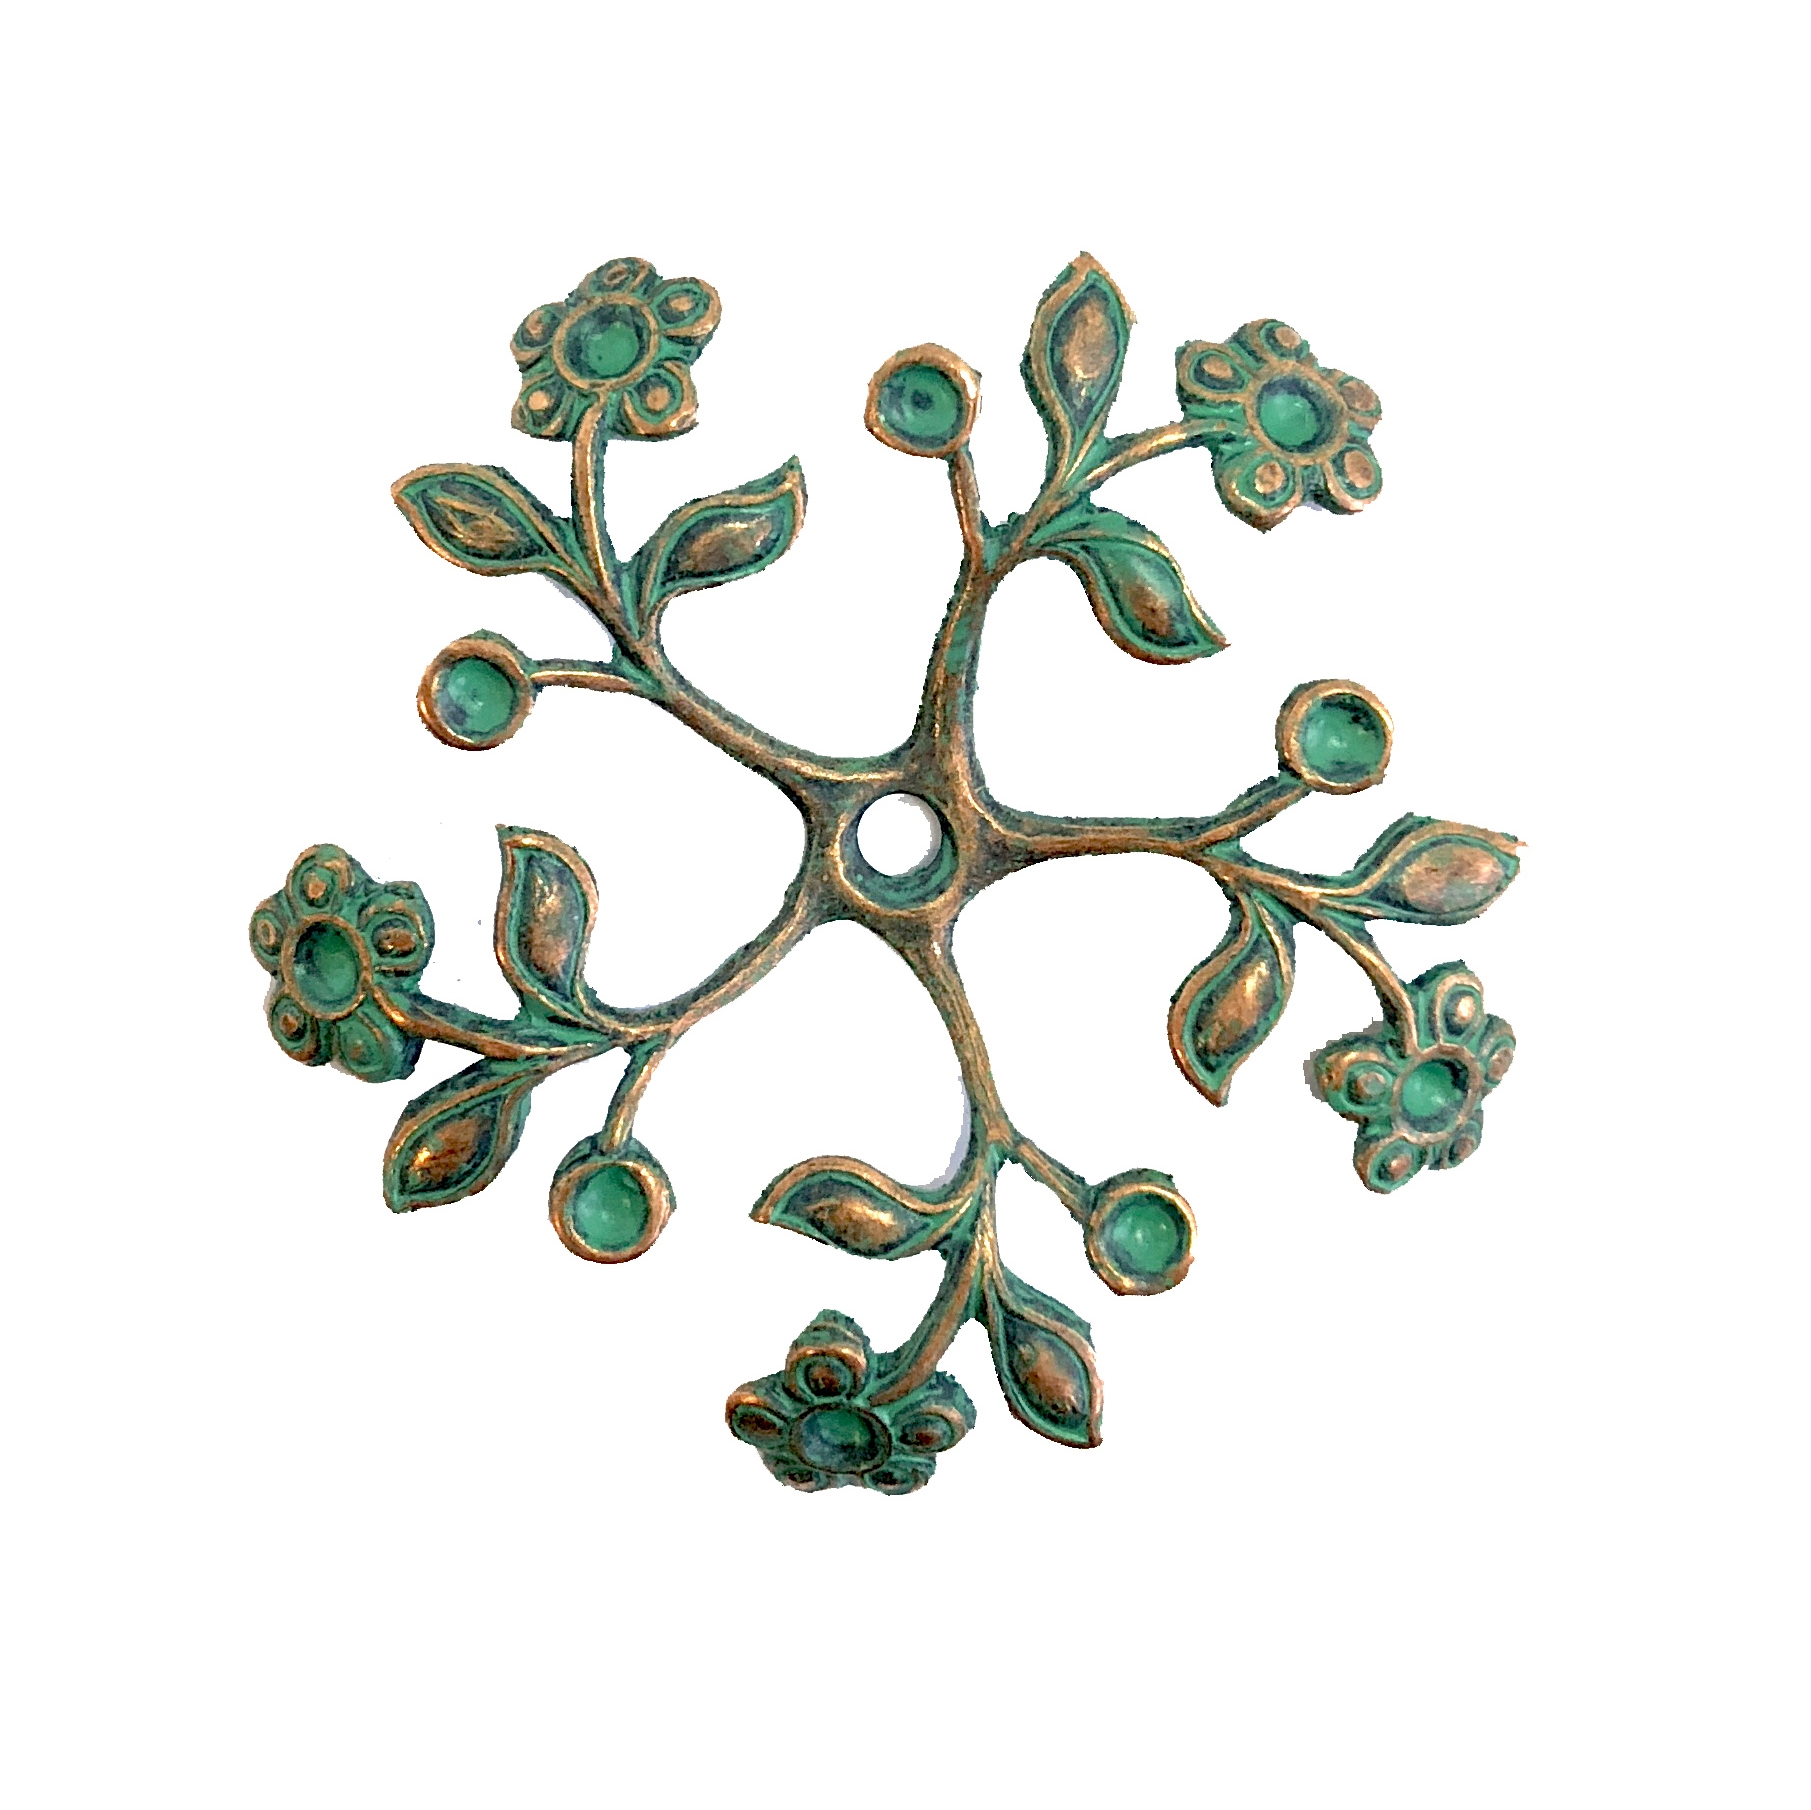 Brass Flower, Brass Leaves, Pinwheel Style, Drilled Stamping, Aqua copper patina, Flower, floral sprig, Spiral, Brass Stamping, 36mm, Pinwheel, Us Made, Nickel Free, B'sue Boutiques, Jewelry Findings, Vintage jewelry Supplies, 08208, aqua, copper